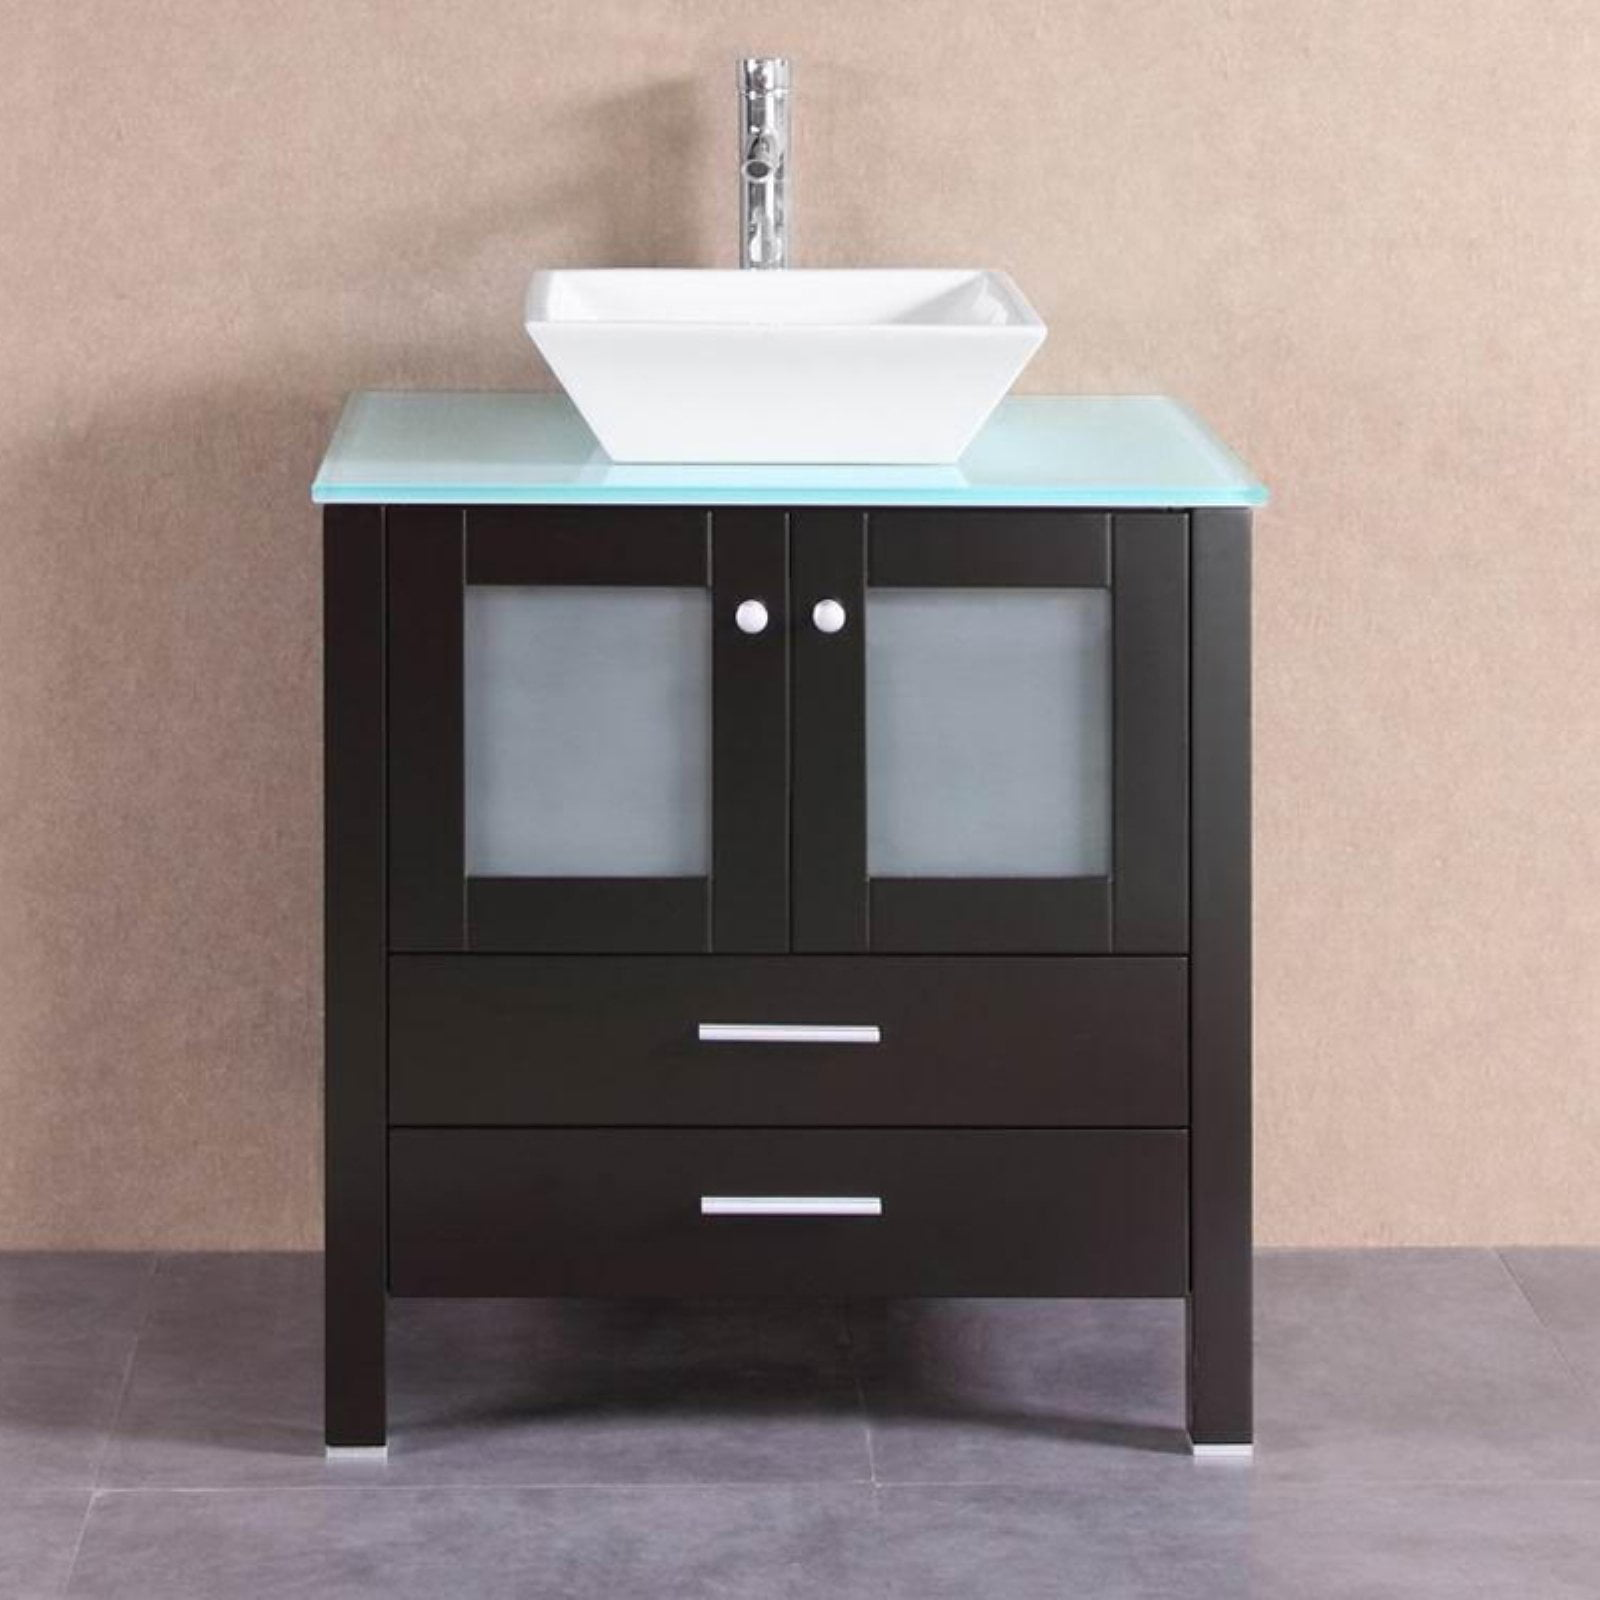 Belvedere 30 in. Modern Single Vessel Bathroom Vanity with Glass Top by Overstock